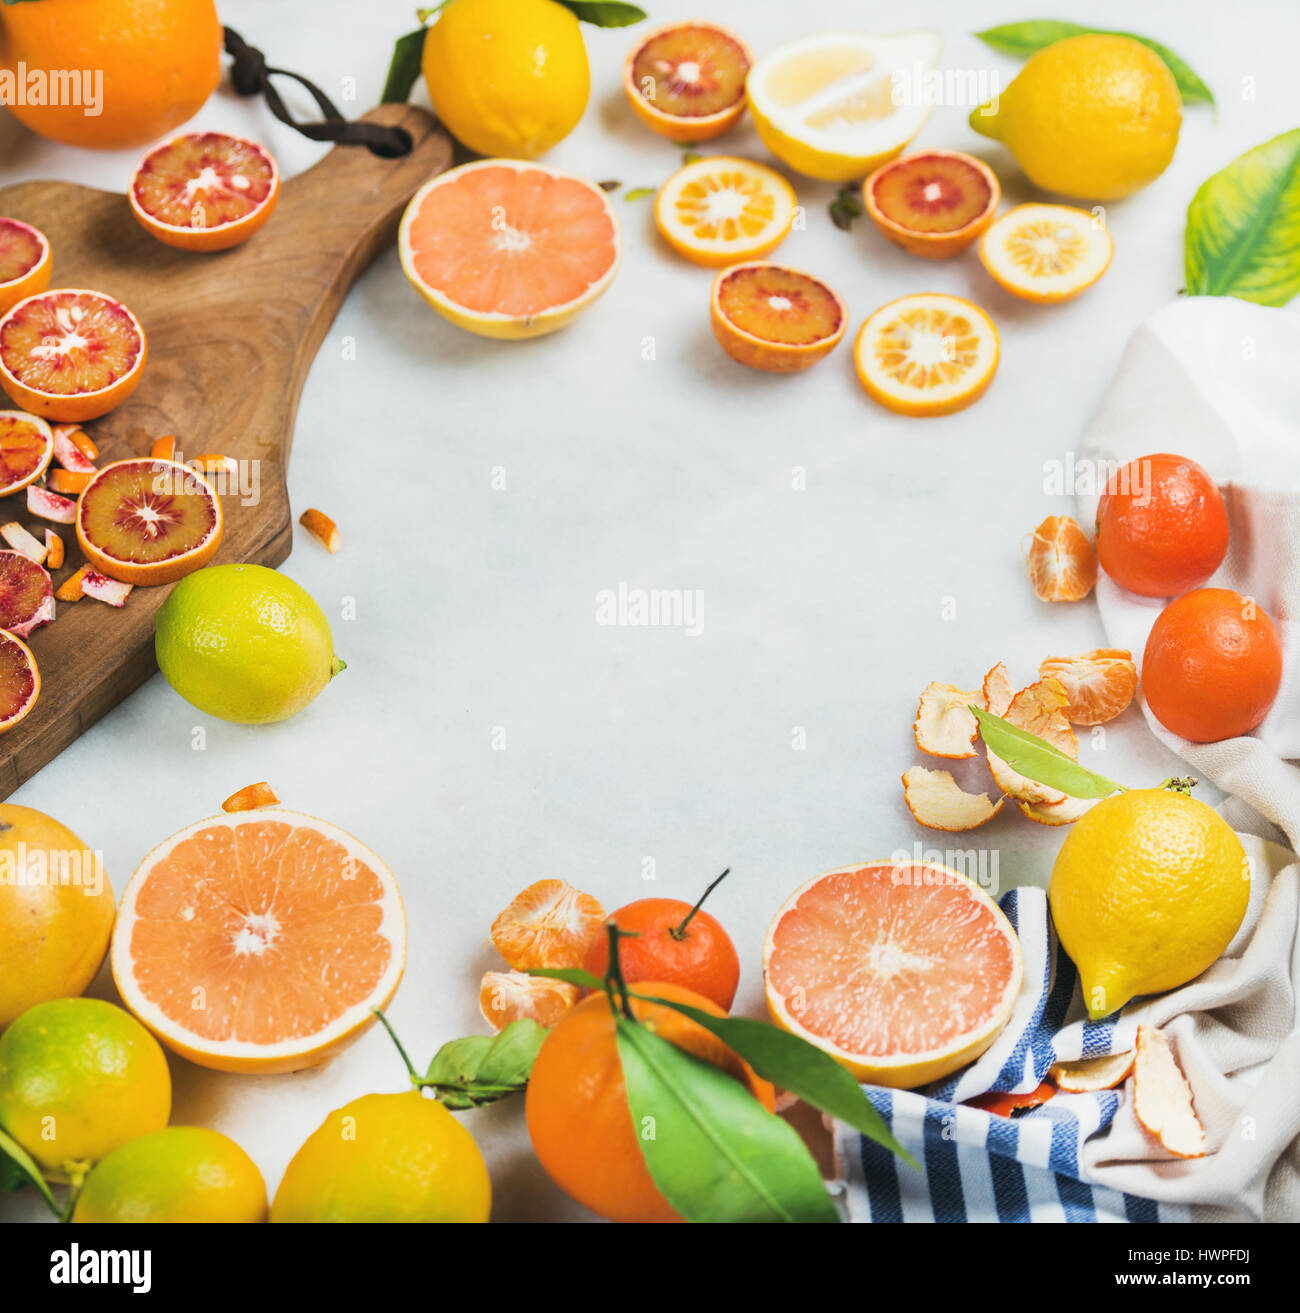 Citrus fruits slices on wooden board over grey marble background - Stock Image